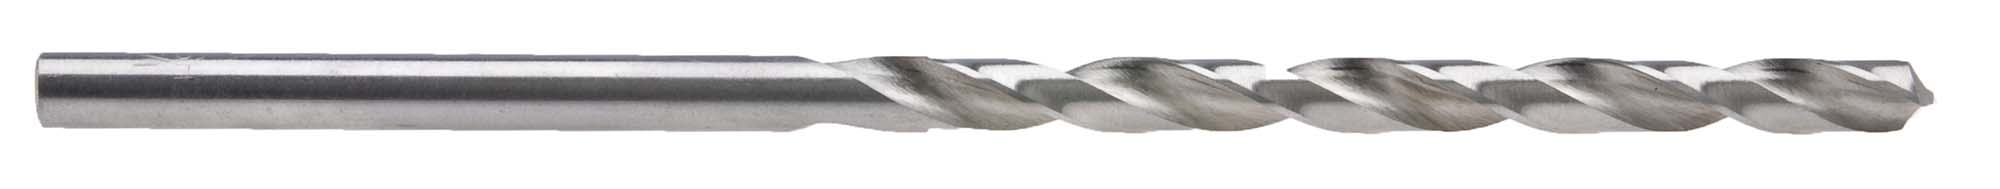 "5/16""  ""Taper Length"" Long Straight Shank Drill Bit, 6 3/8"" Overall Length, High Speed Steel"